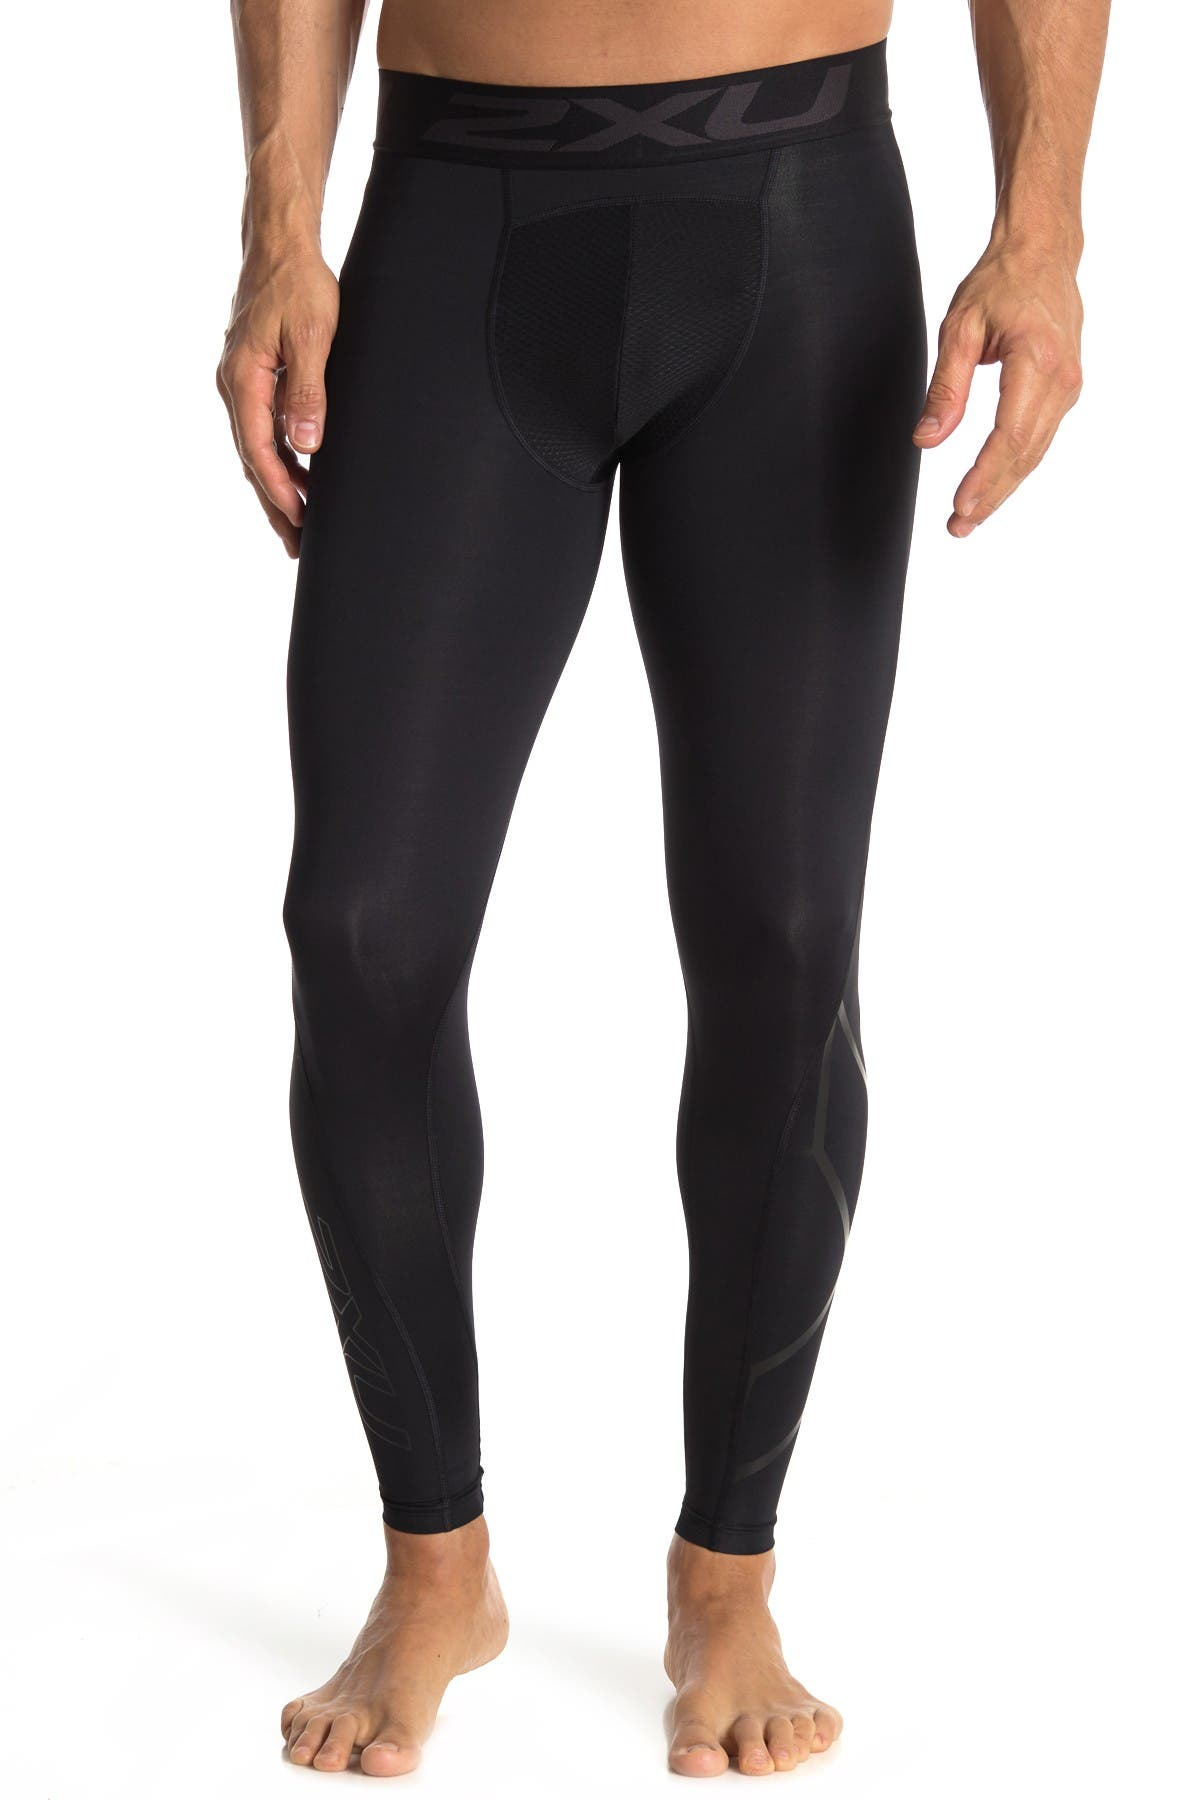 2xu Accelerate Compression Tights G2 In Blk/nro